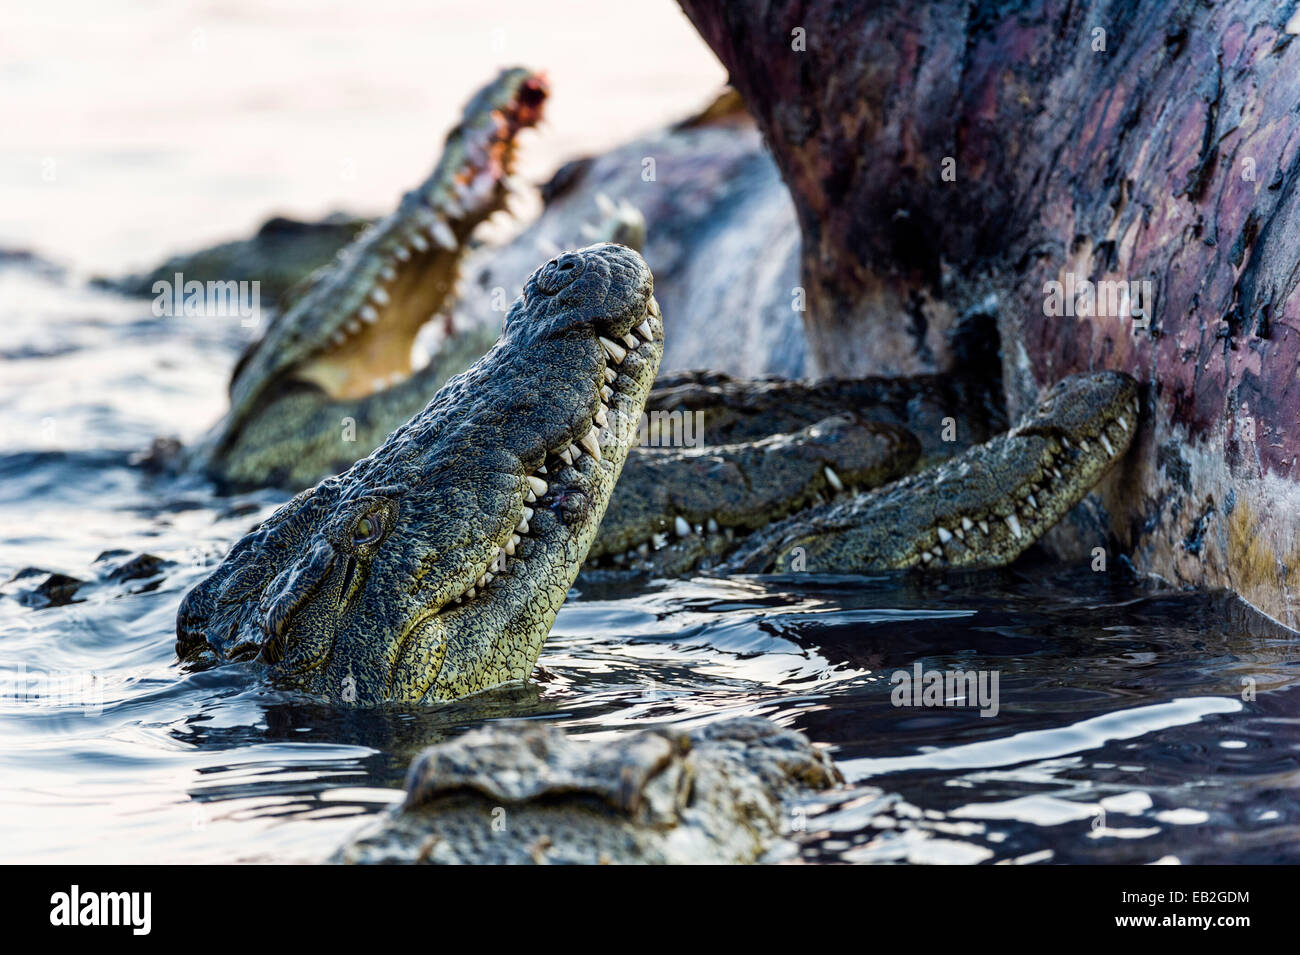 Nile Crocodiles feast on the decaying corpse of a Nile Hippopotamus. - Stock Image